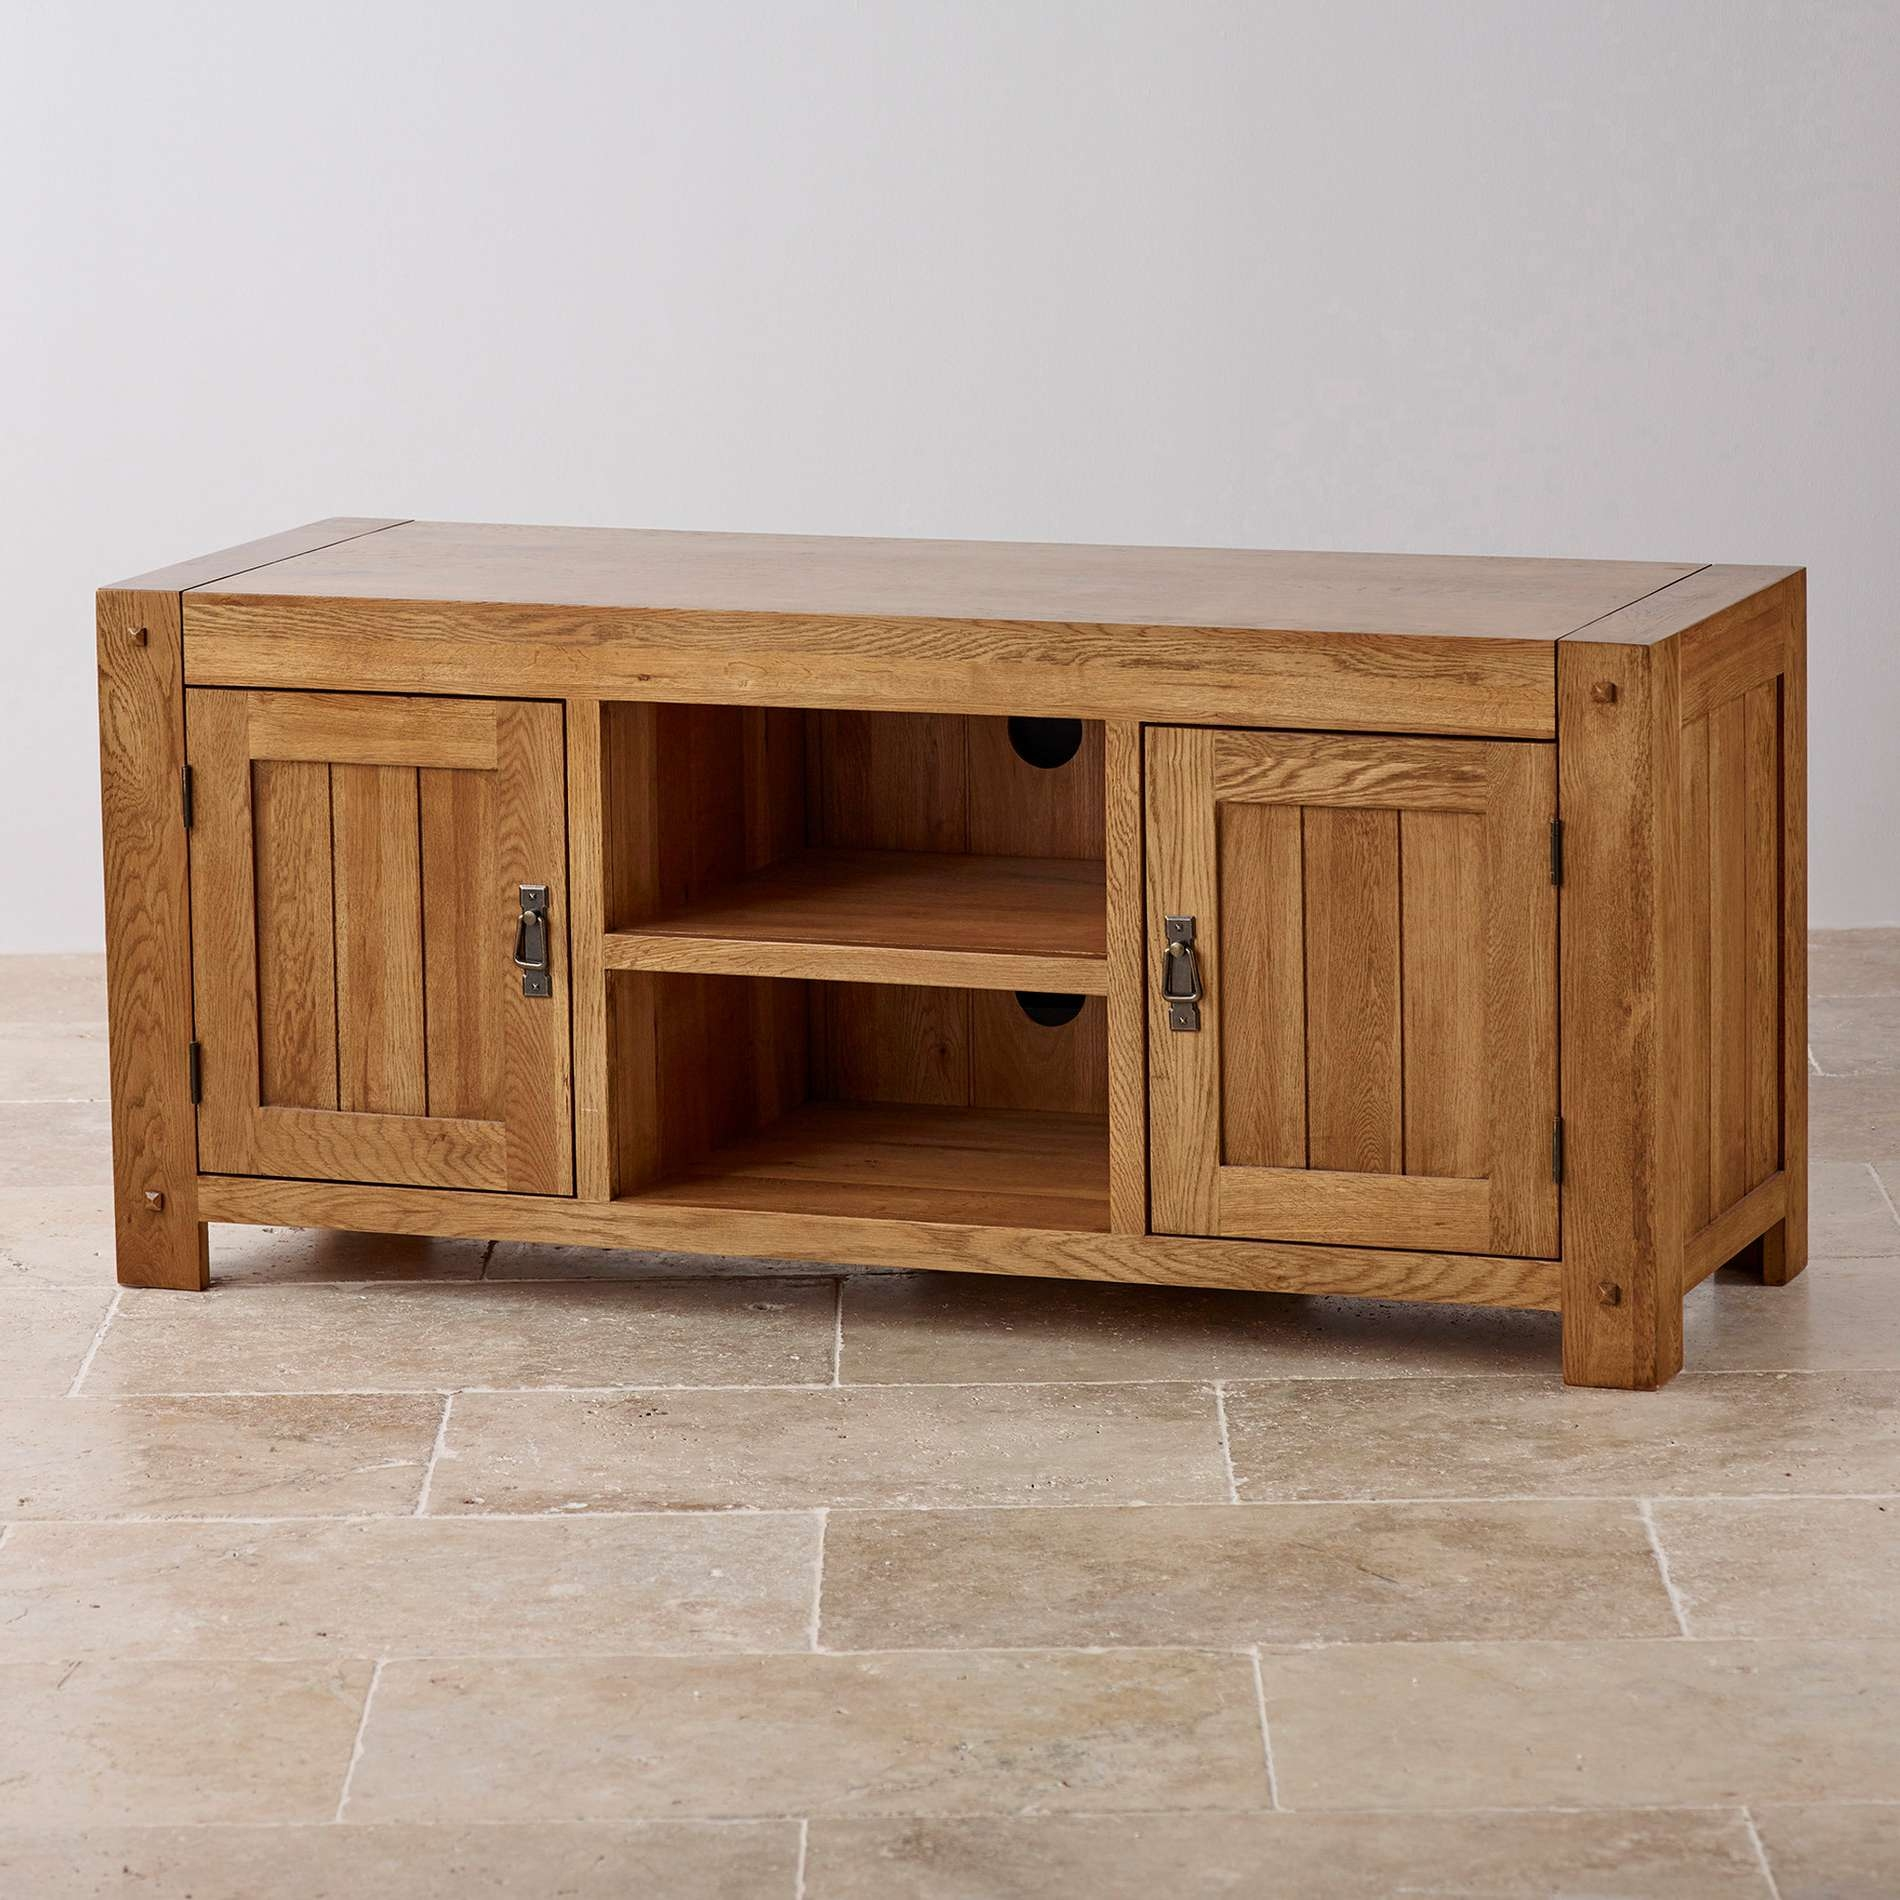 Quercus Wide Tv Cabinet In Rustic Solid Oak | Oak Furniture Land Regarding Oak Tv Cabinets (Gallery 18 of 20)